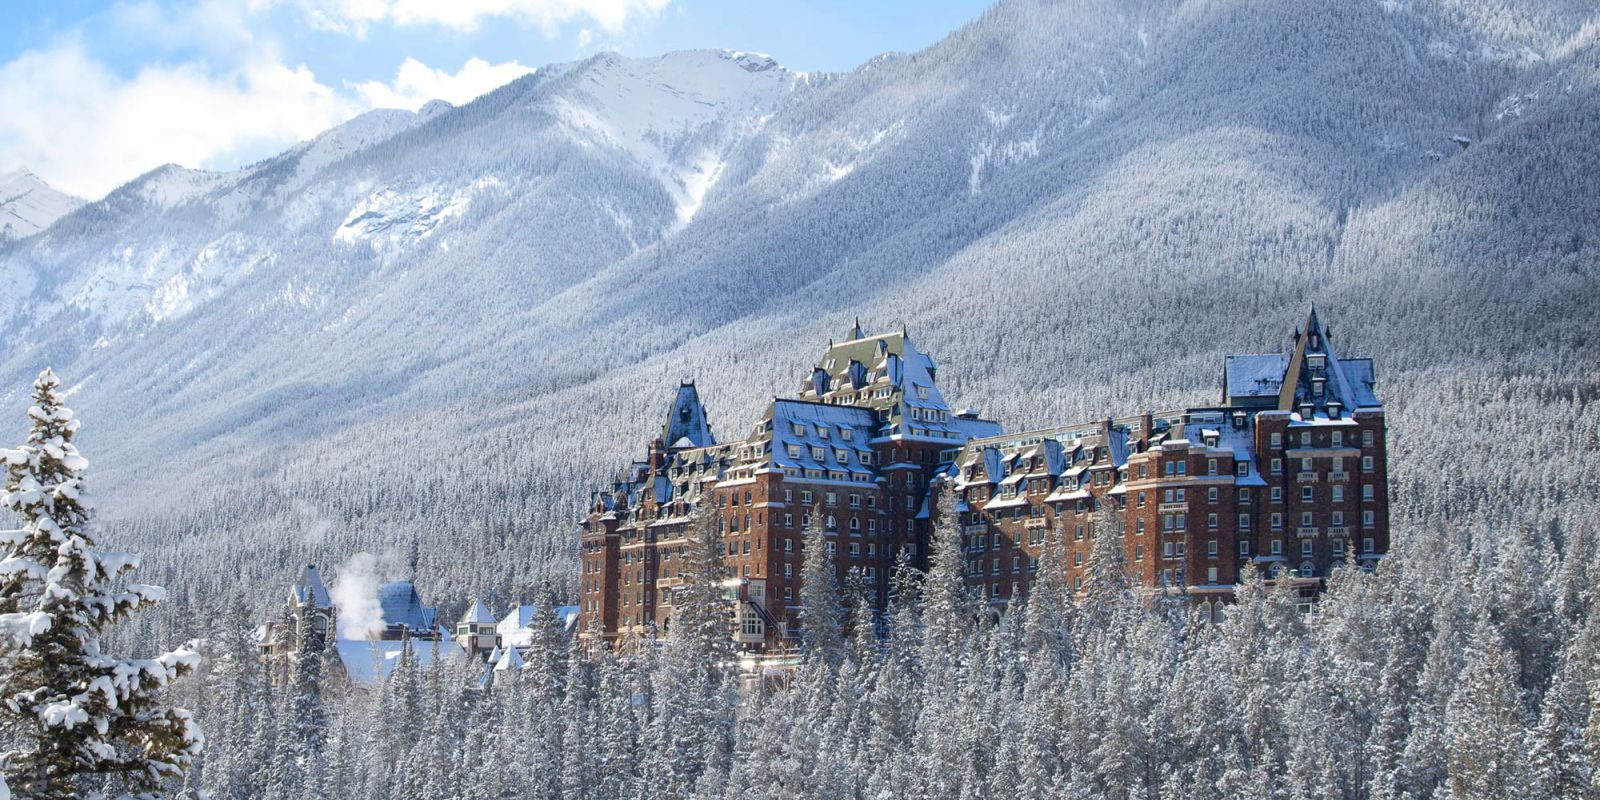 Best Hotels In Banff For Skiing